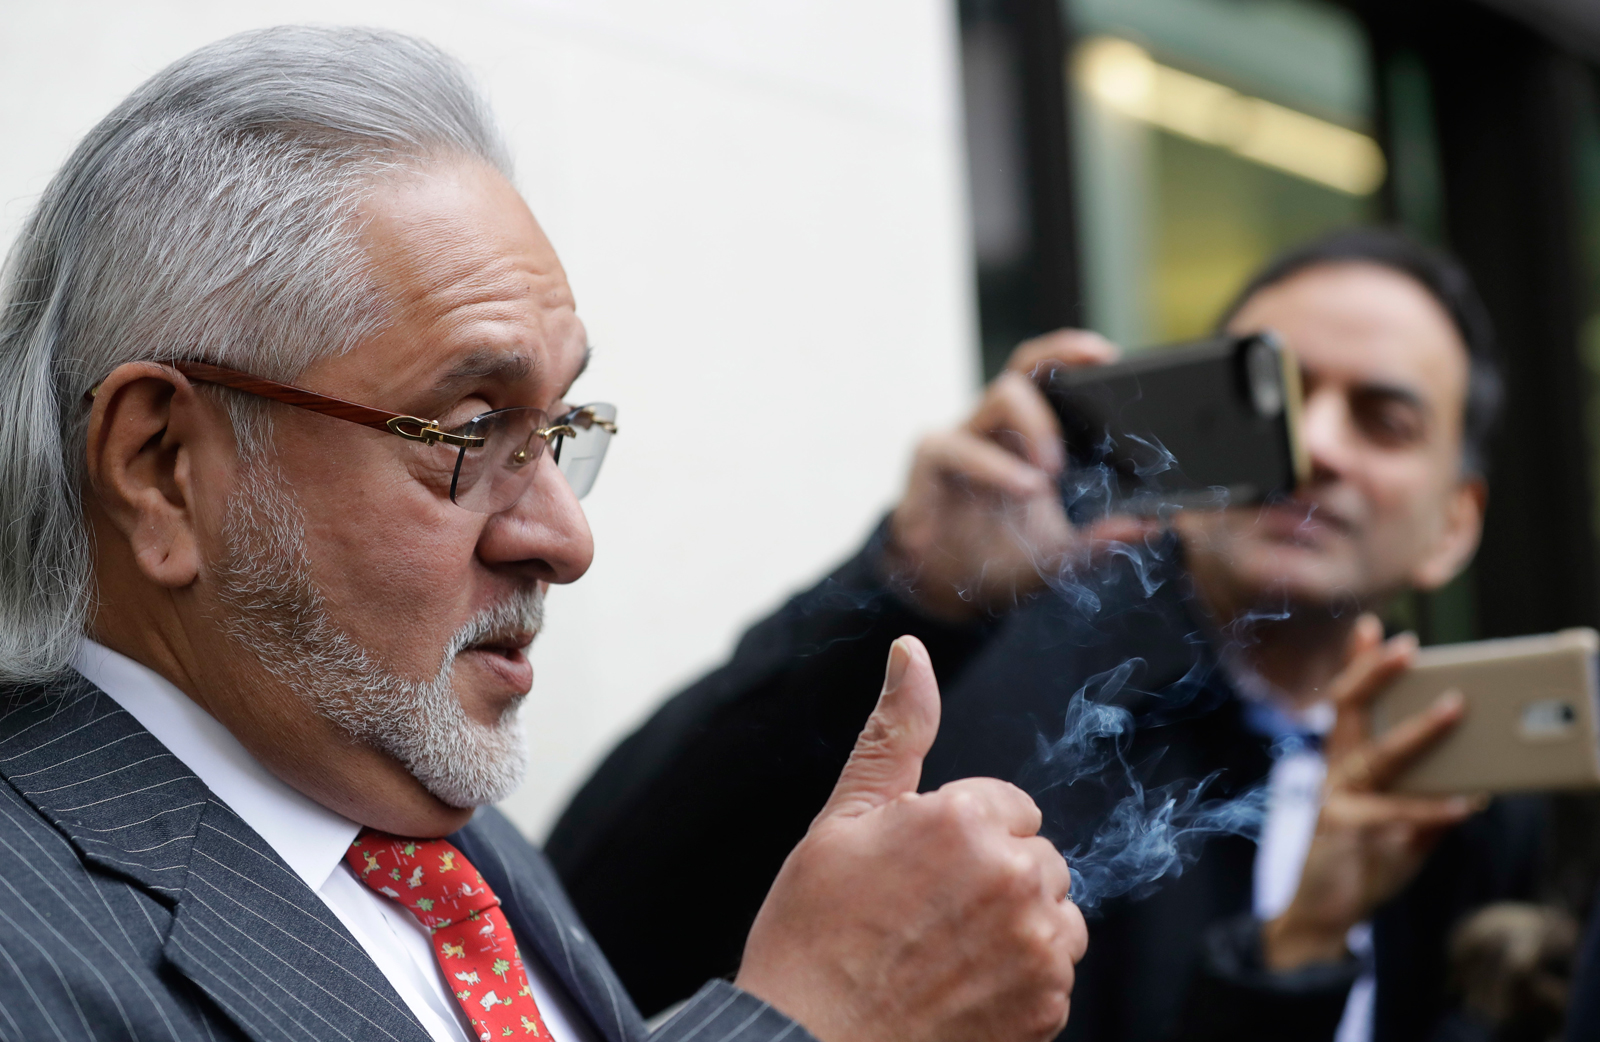 Is Vijay Mallya the victim of mentality not quite right?